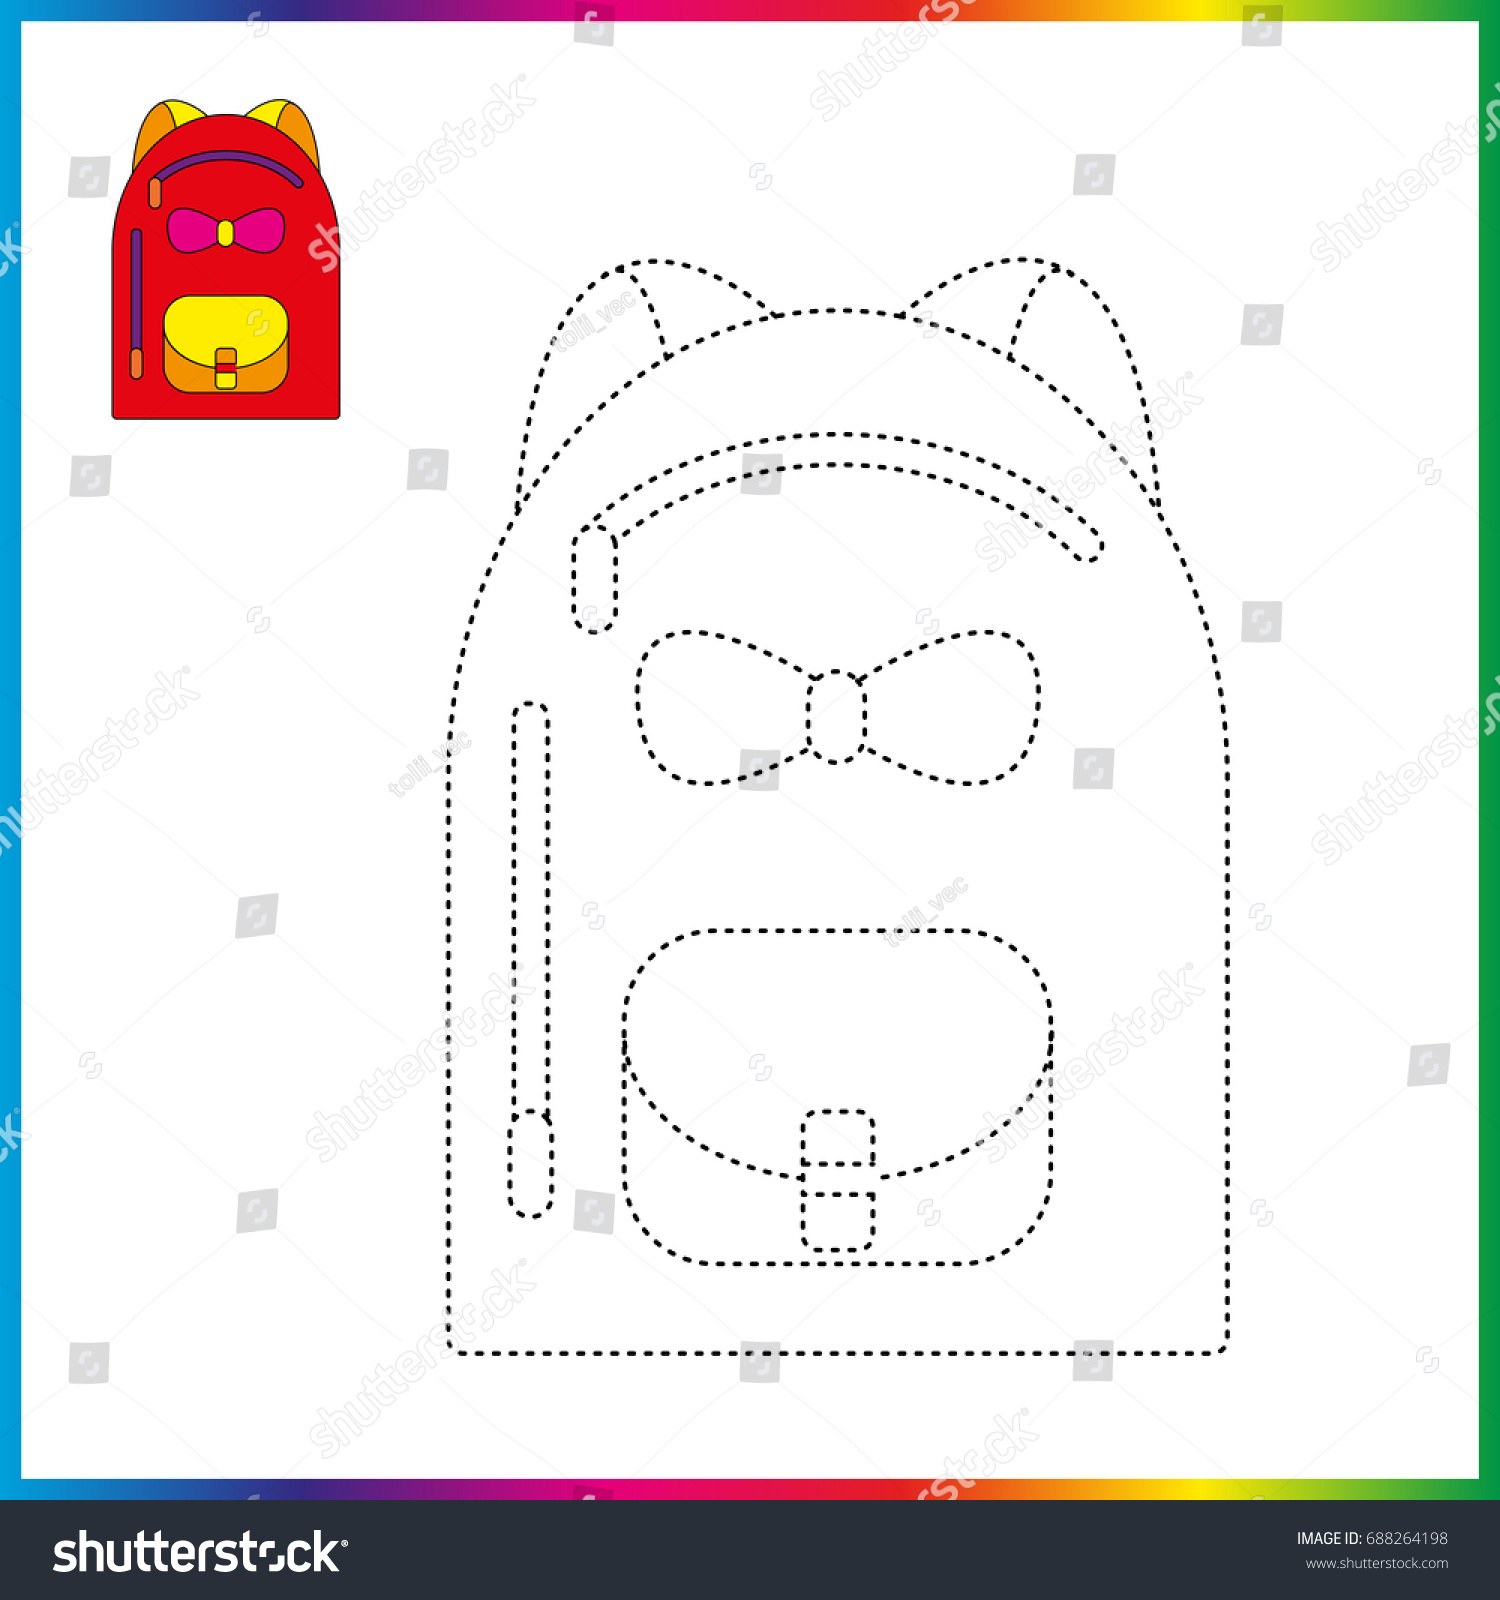 School Bag Connect Dots Coloring Page Stock Vector (Royalty Free ...